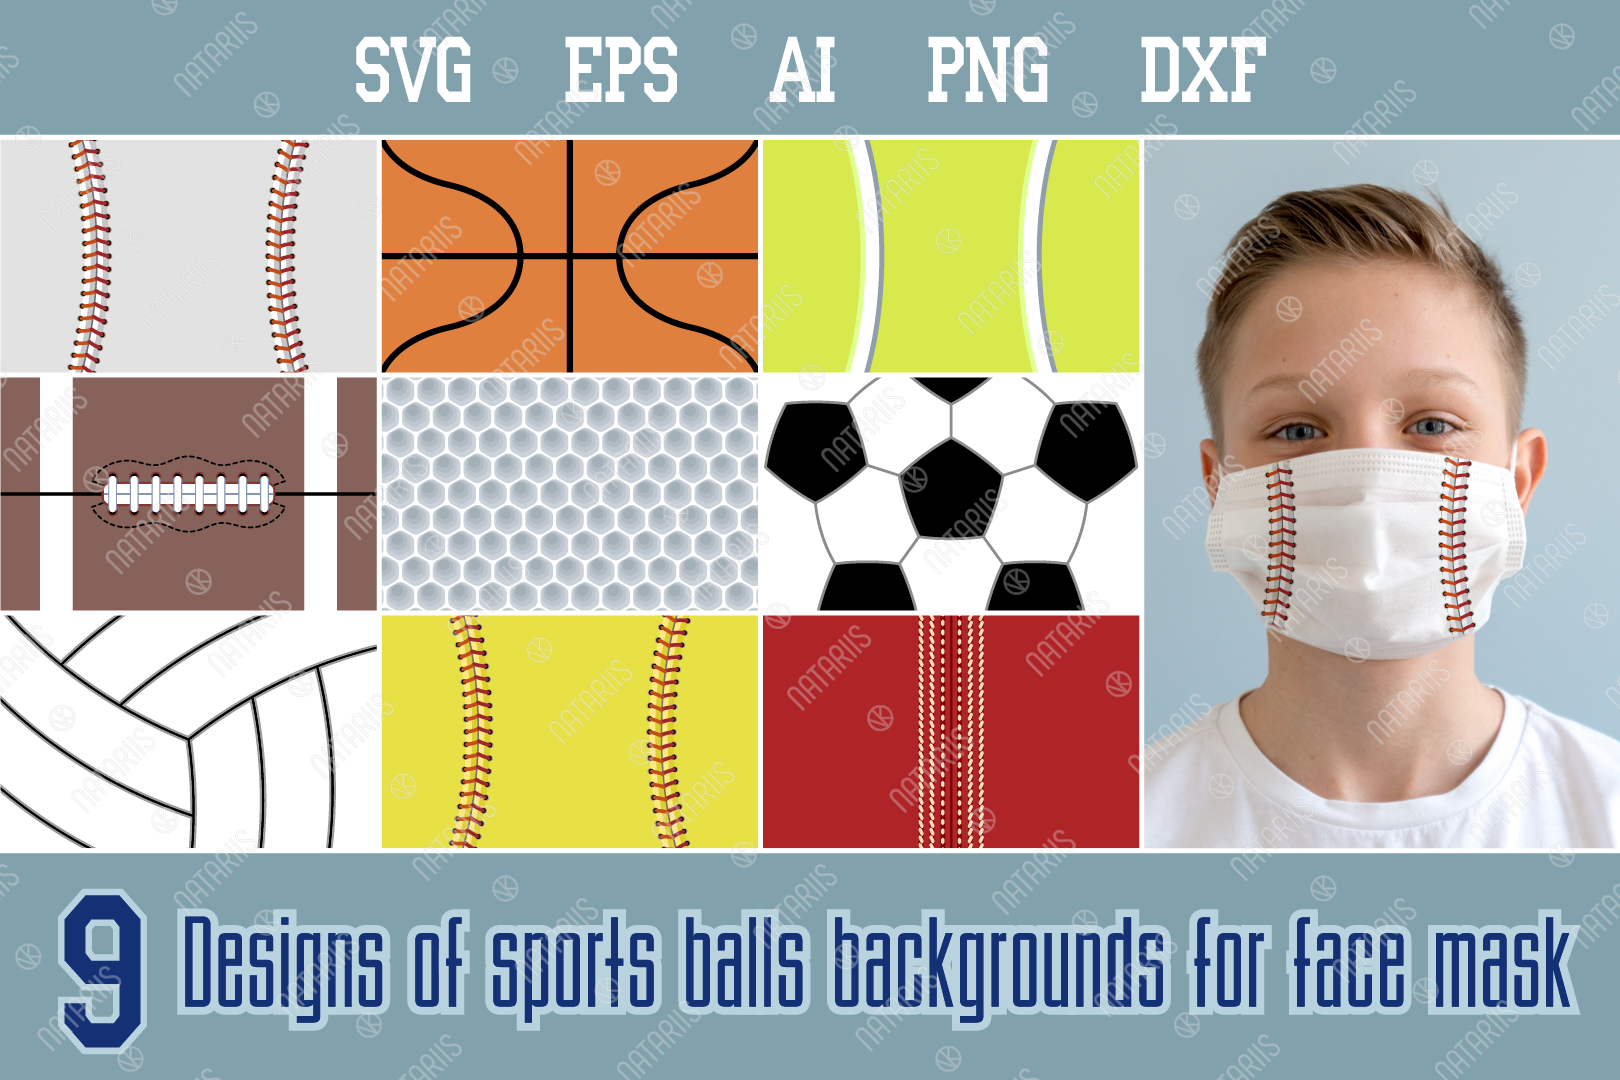 Download Free 9 Design Of Sports Balls Backgrounds Graphic By Natariis Studio Creative Fabrica for Cricut Explore, Silhouette and other cutting machines.